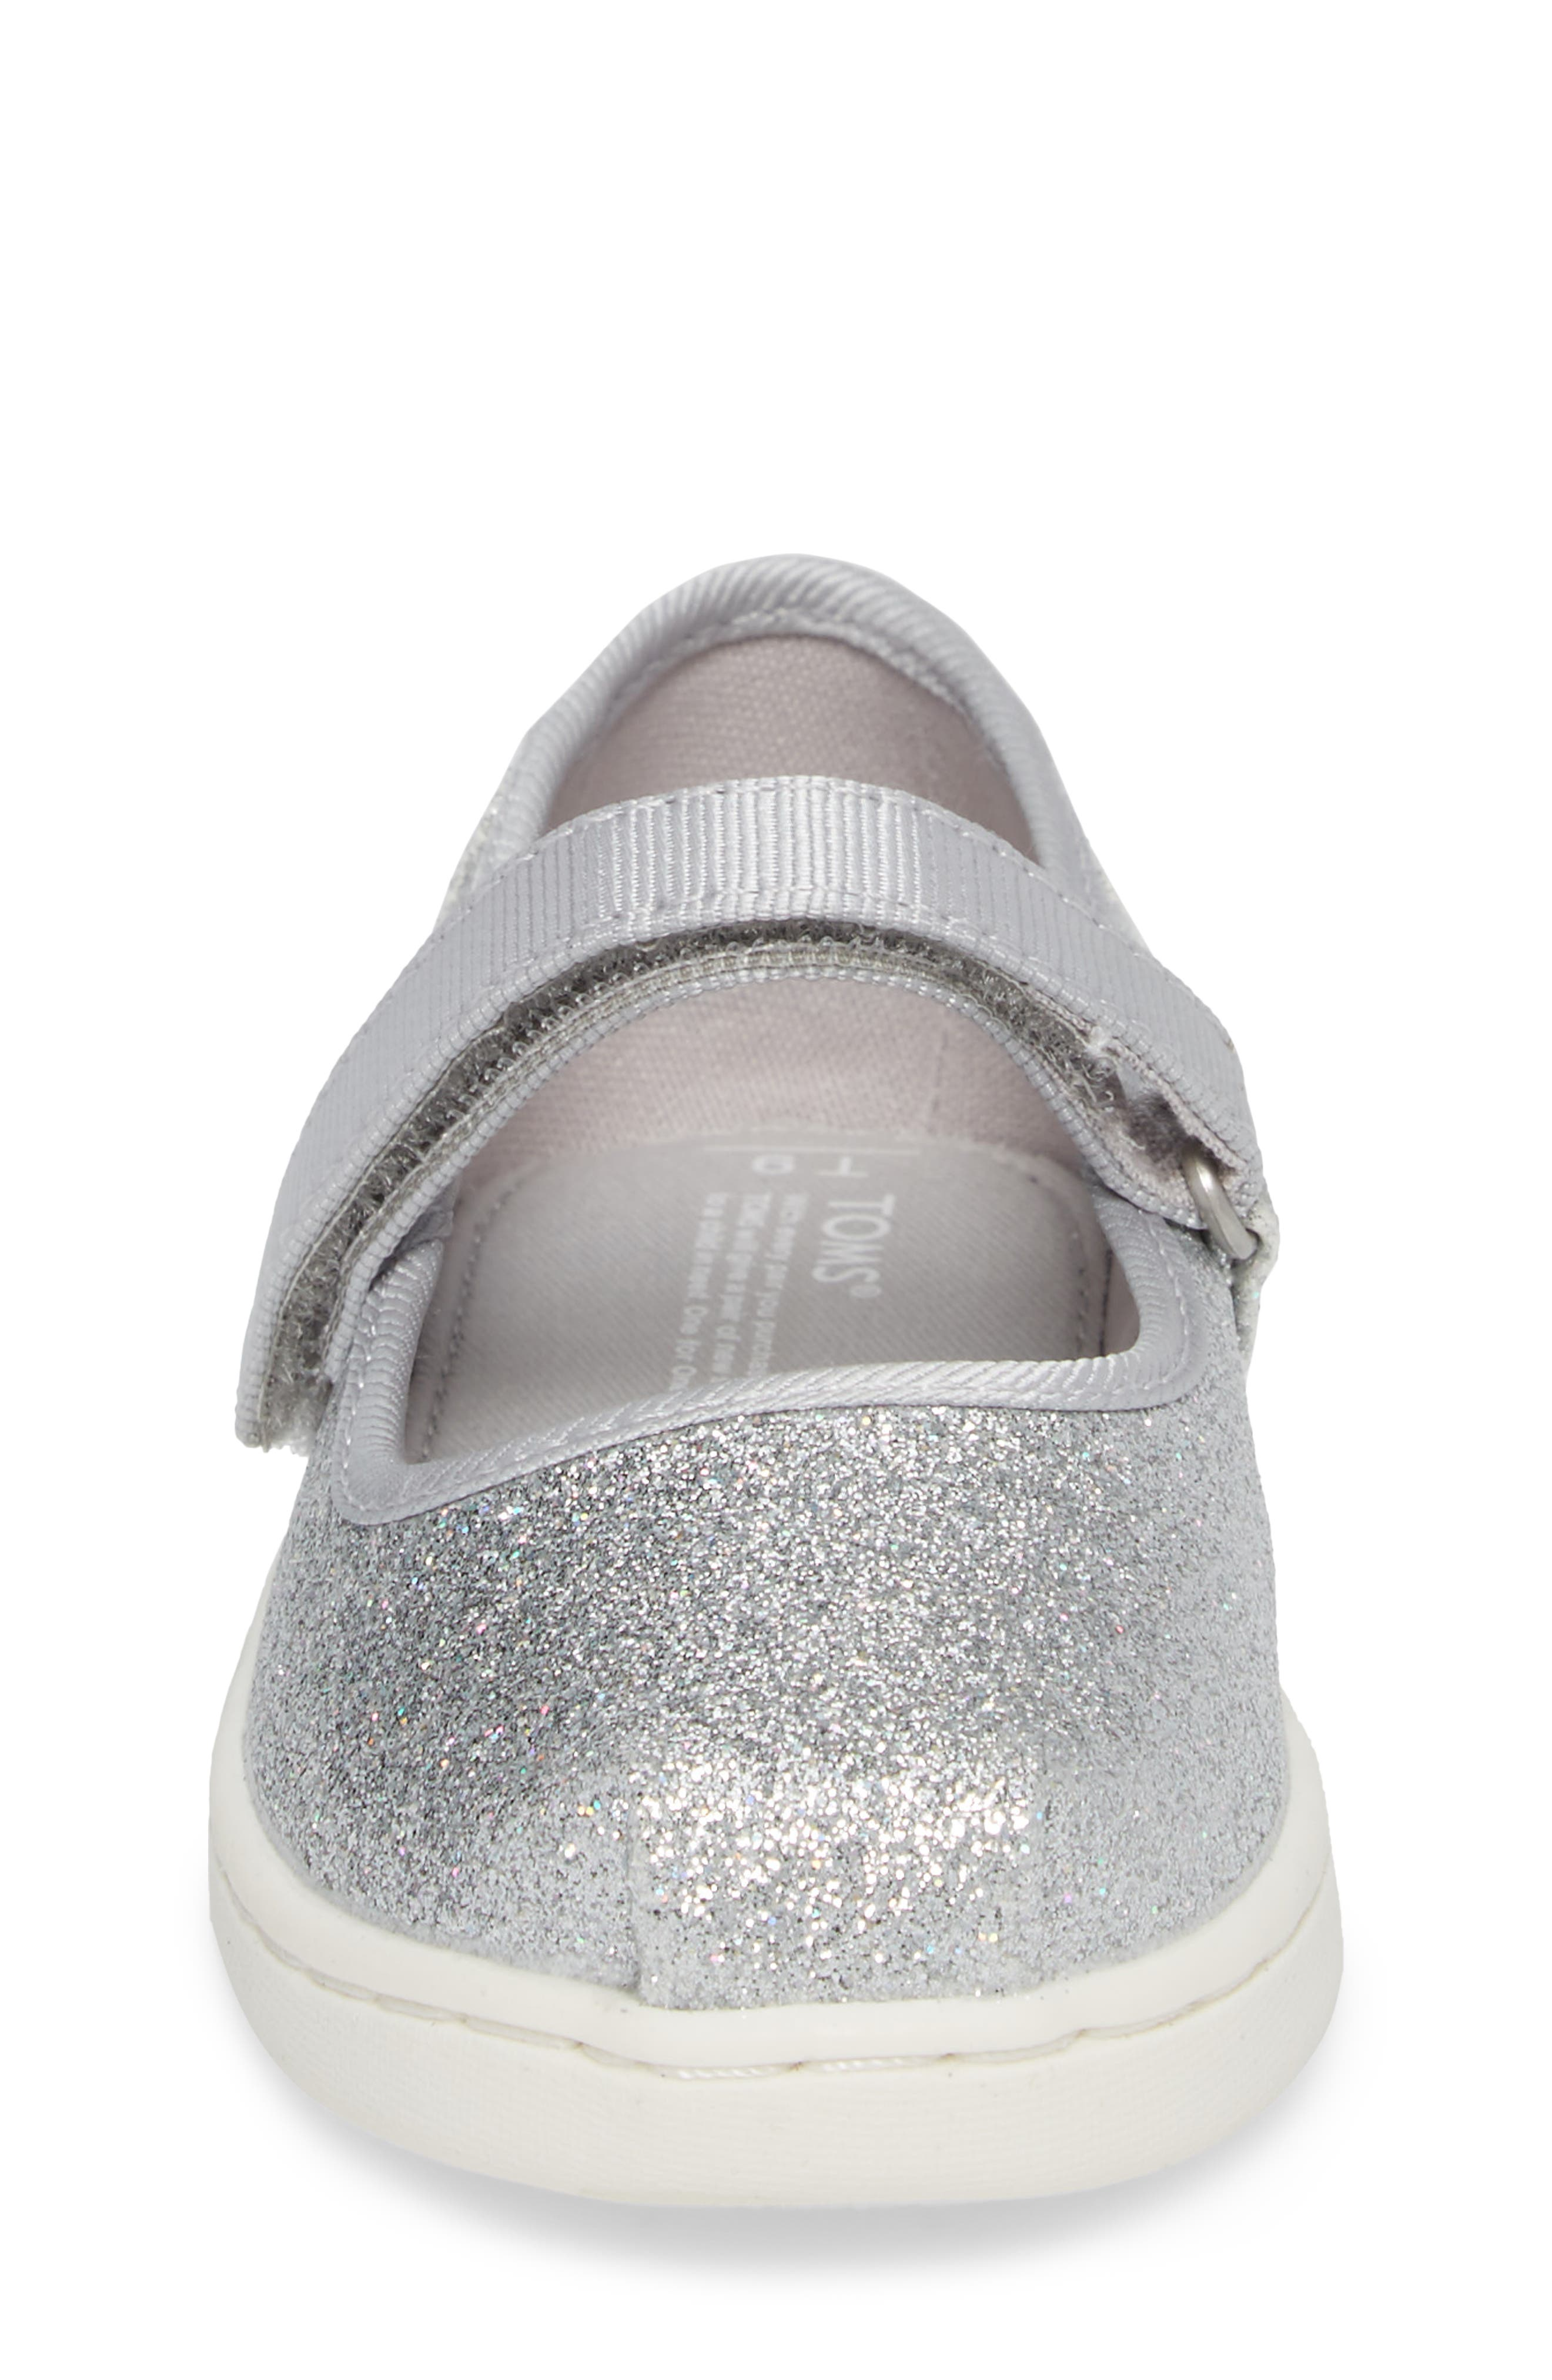 Mary Jane Sneaker,                             Alternate thumbnail 4, color,                             Silver Iridescent Glimmer